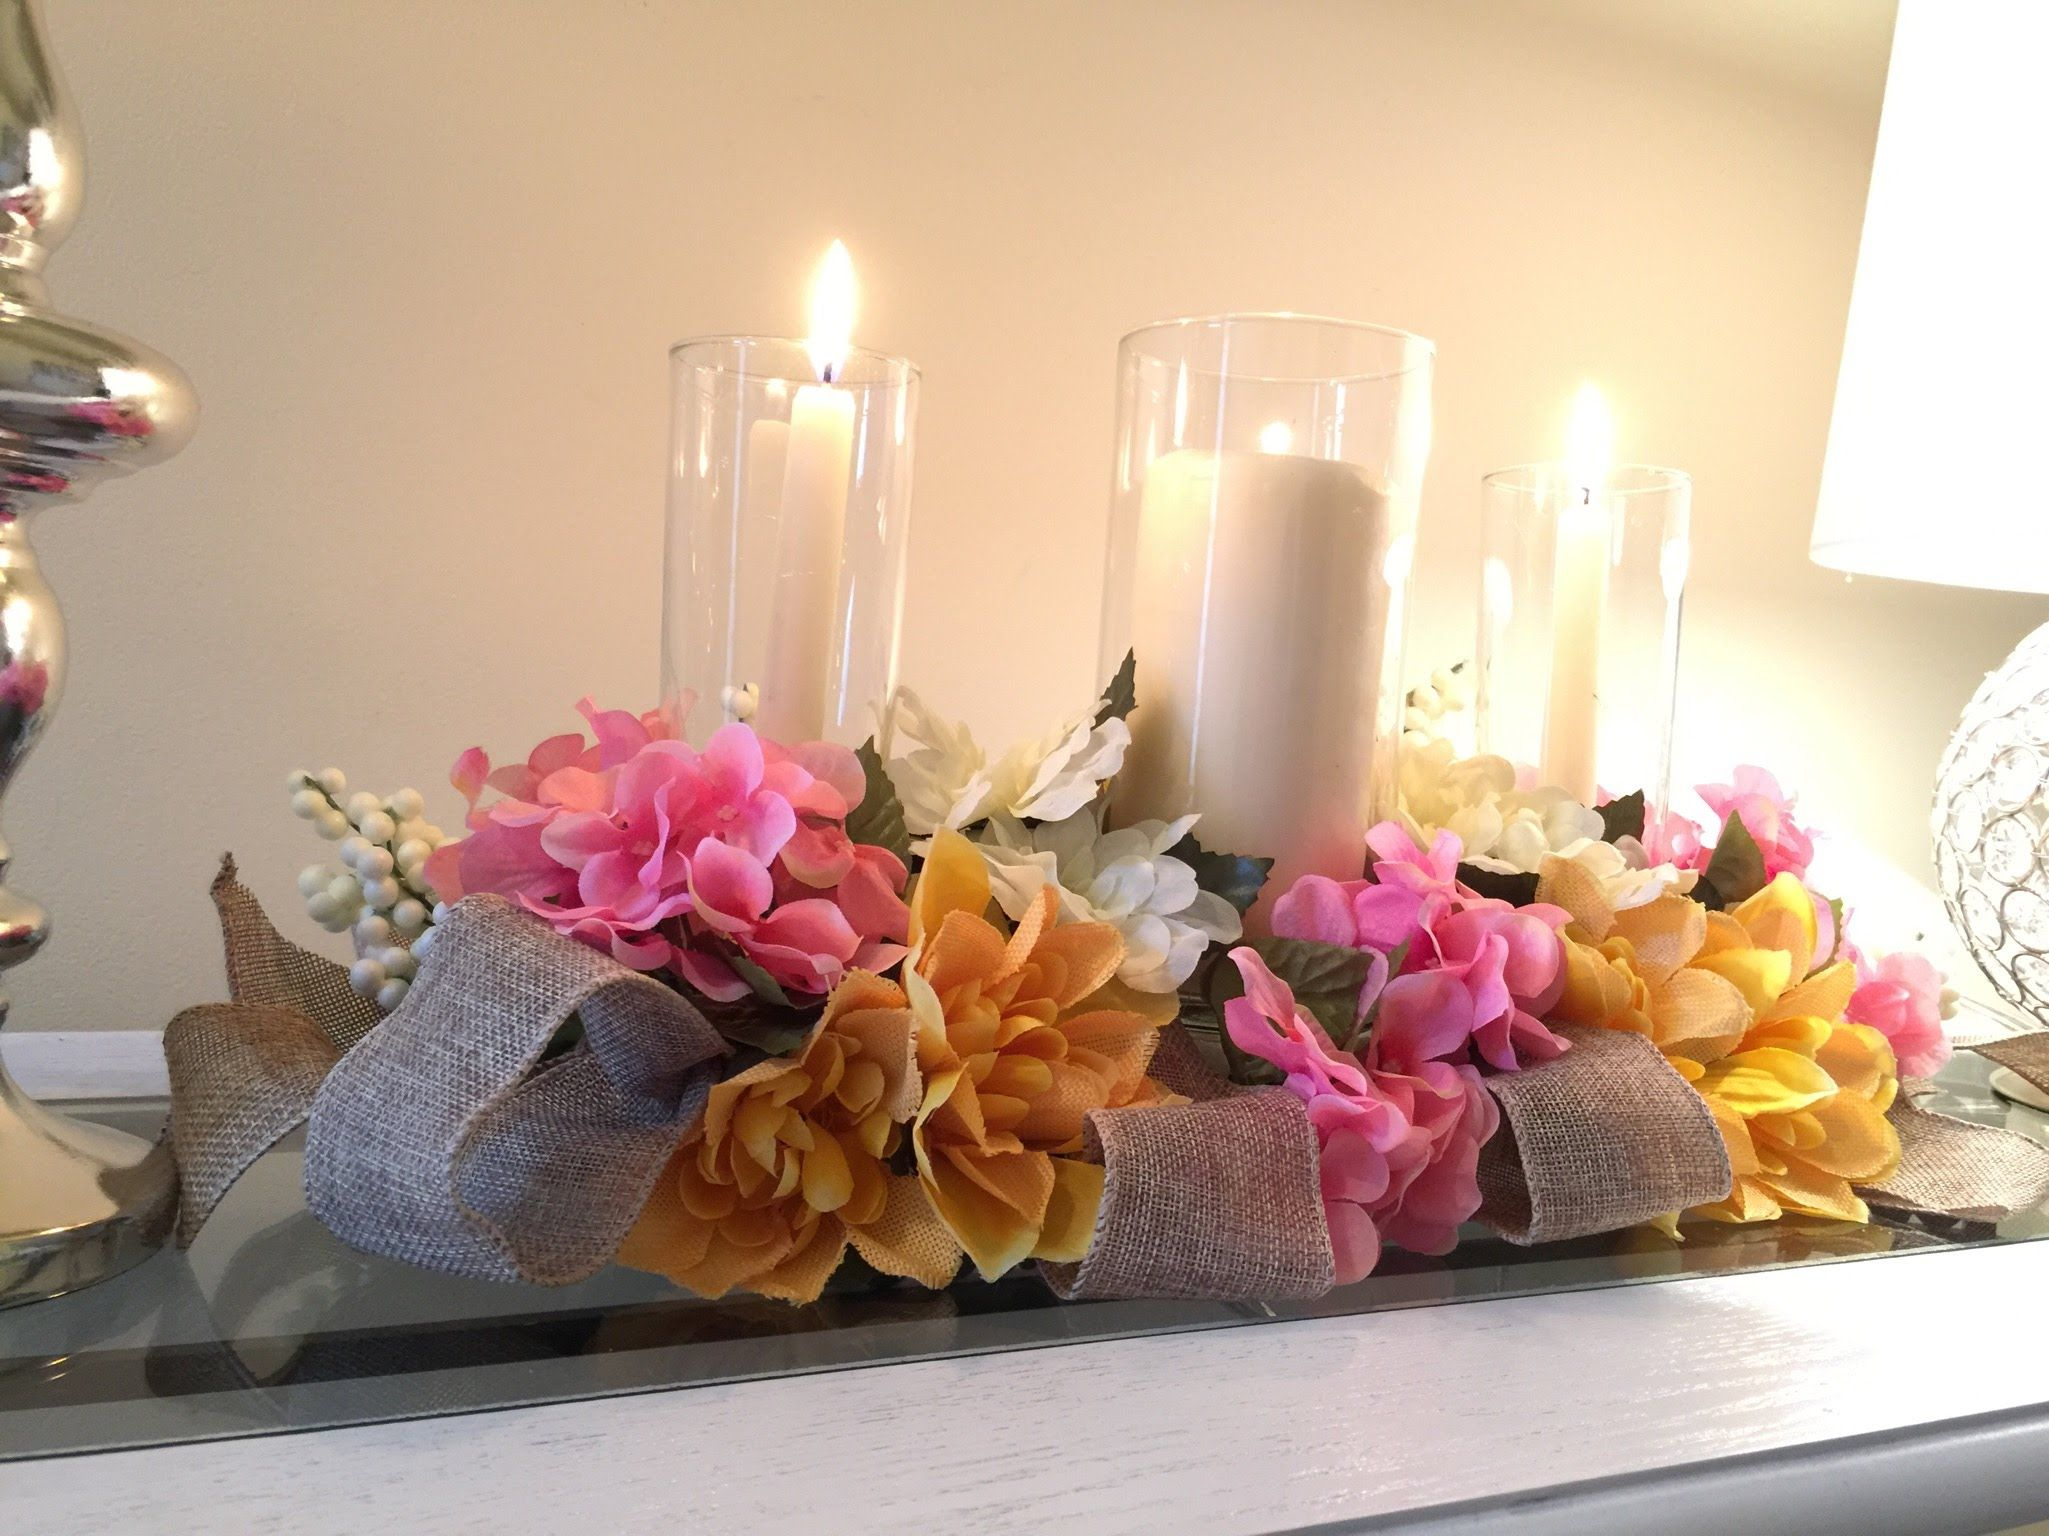 DIY Tutorial : How To Make Centerpieces From Grocery Store Flowers